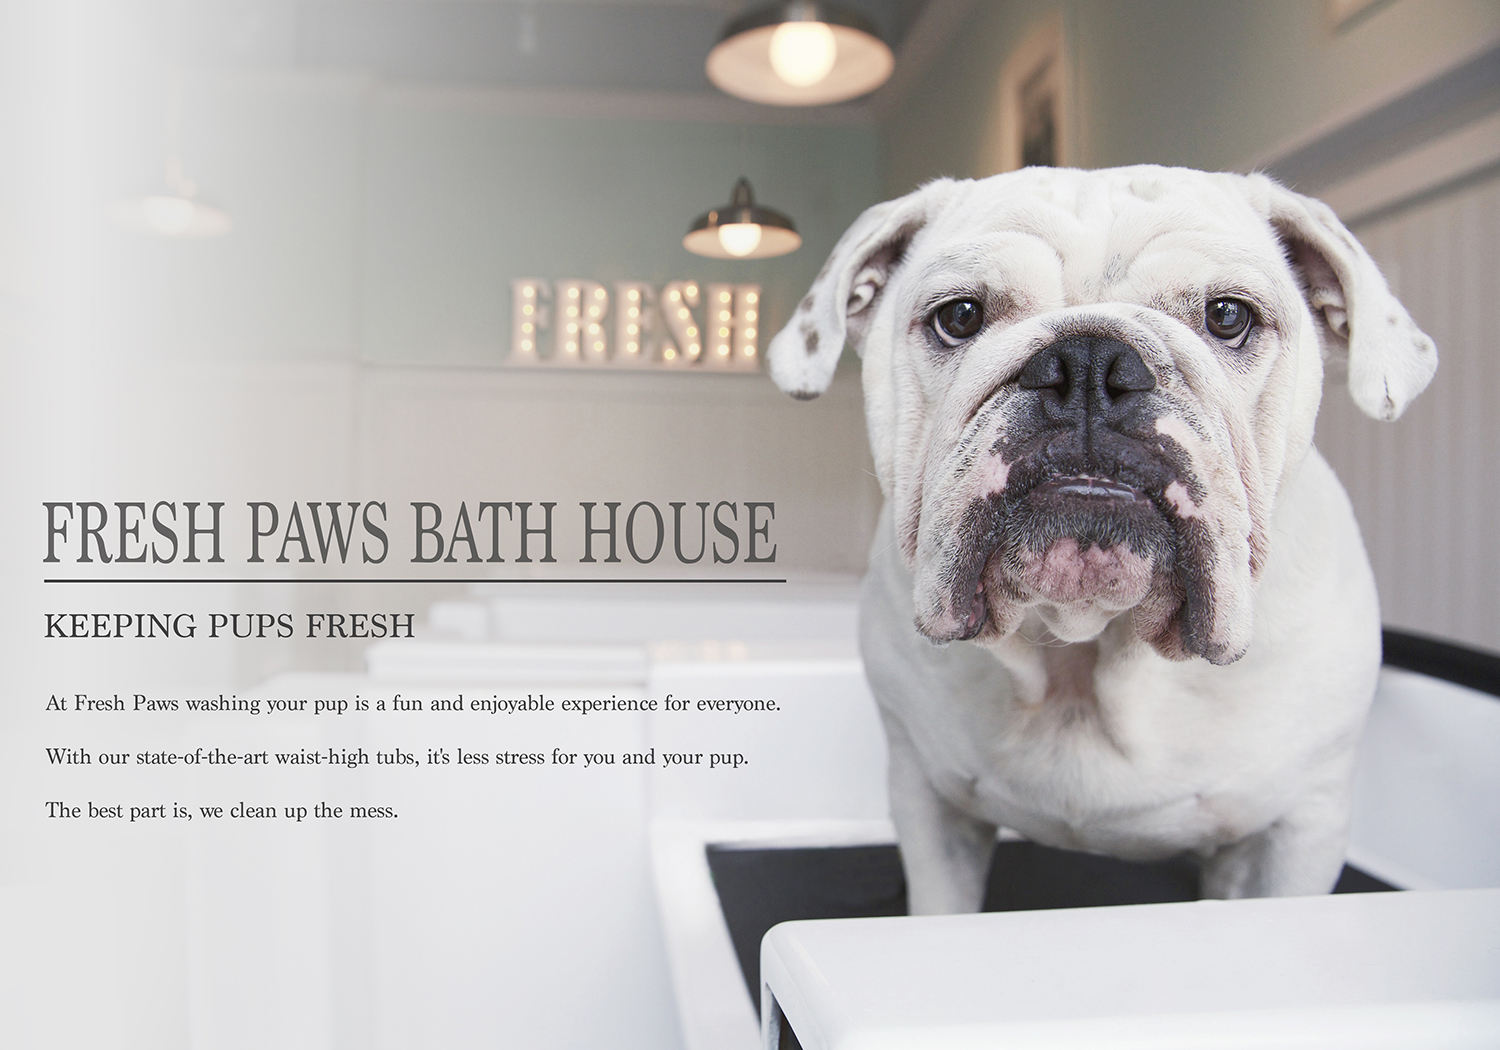 Photographing for Pet Business - Dog groomers, day cares and pet stores.